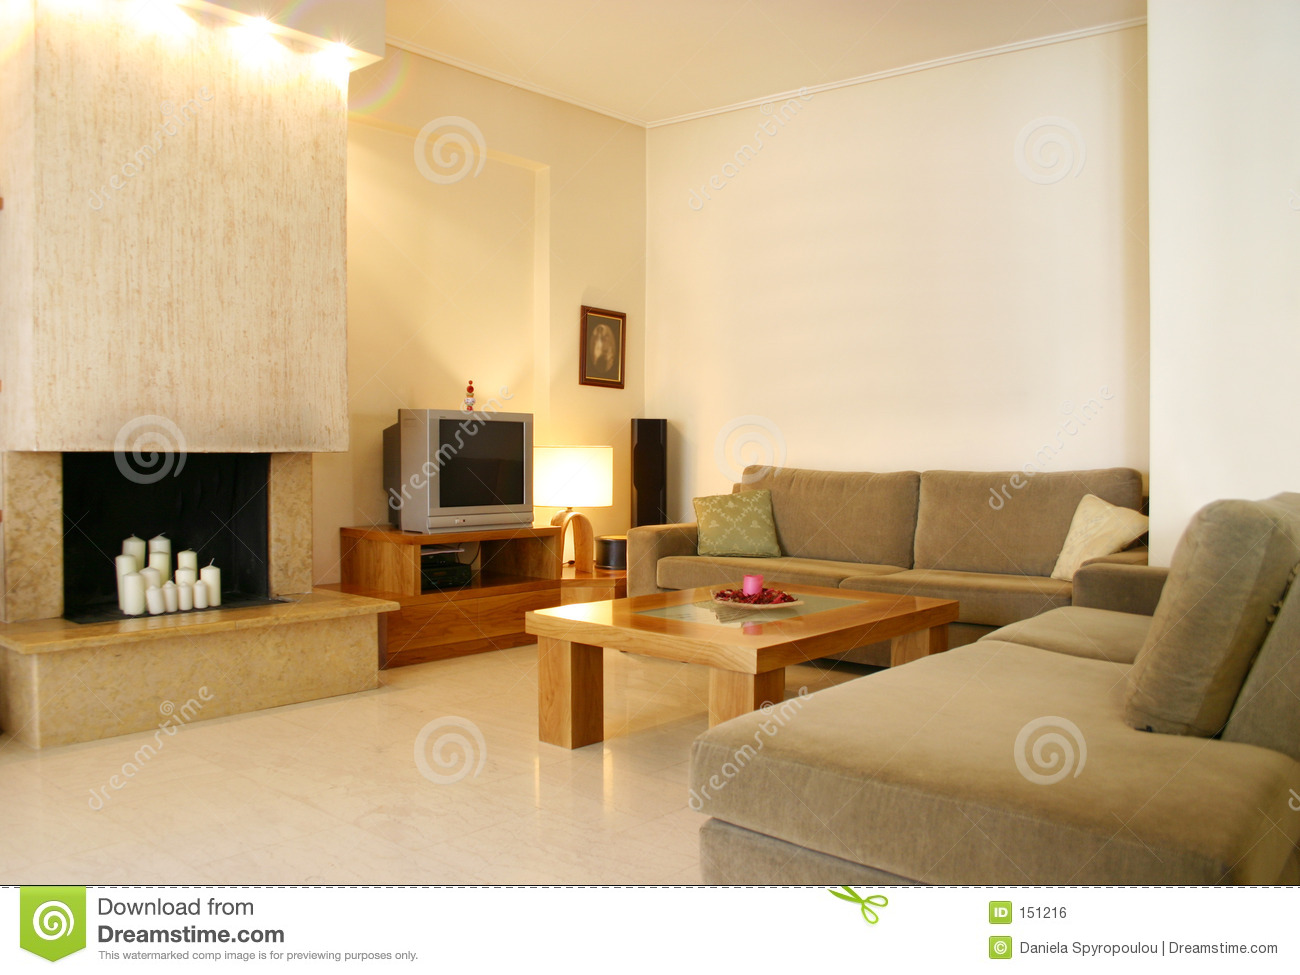 Home Interior Design Royalty Free Stock Image Image 151216